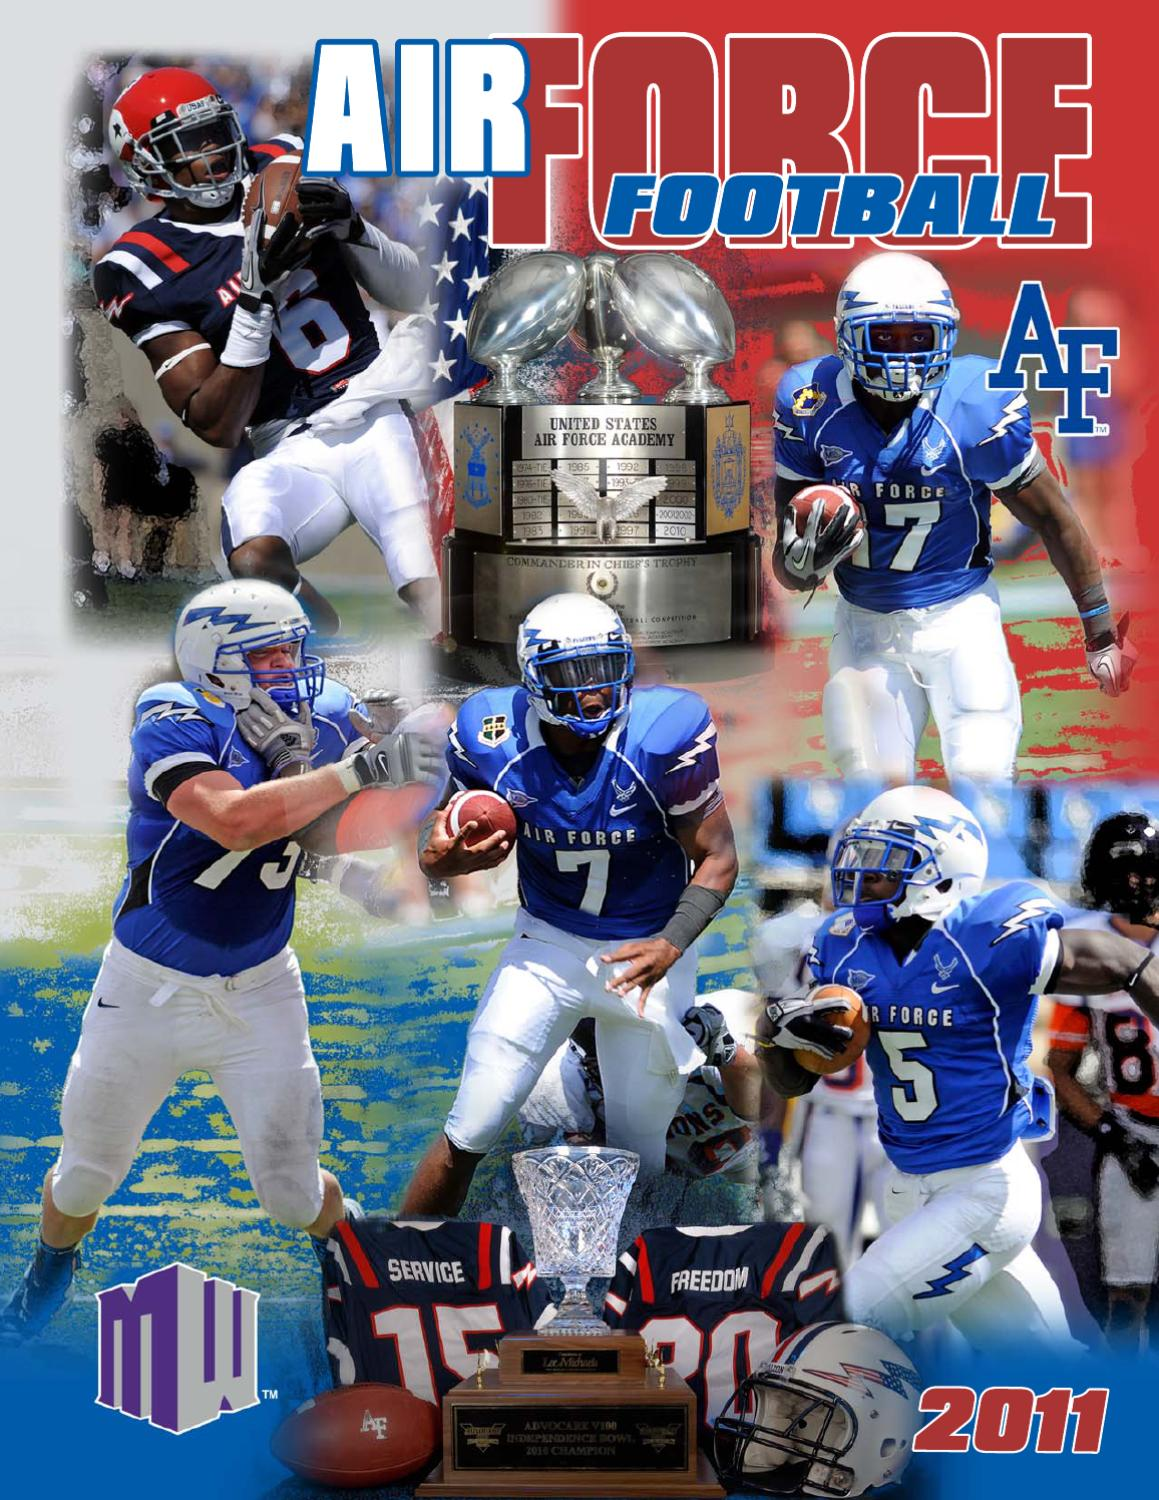 b36ada378 Air Force Football Media Guide 2011 by Dave Toller - issuu